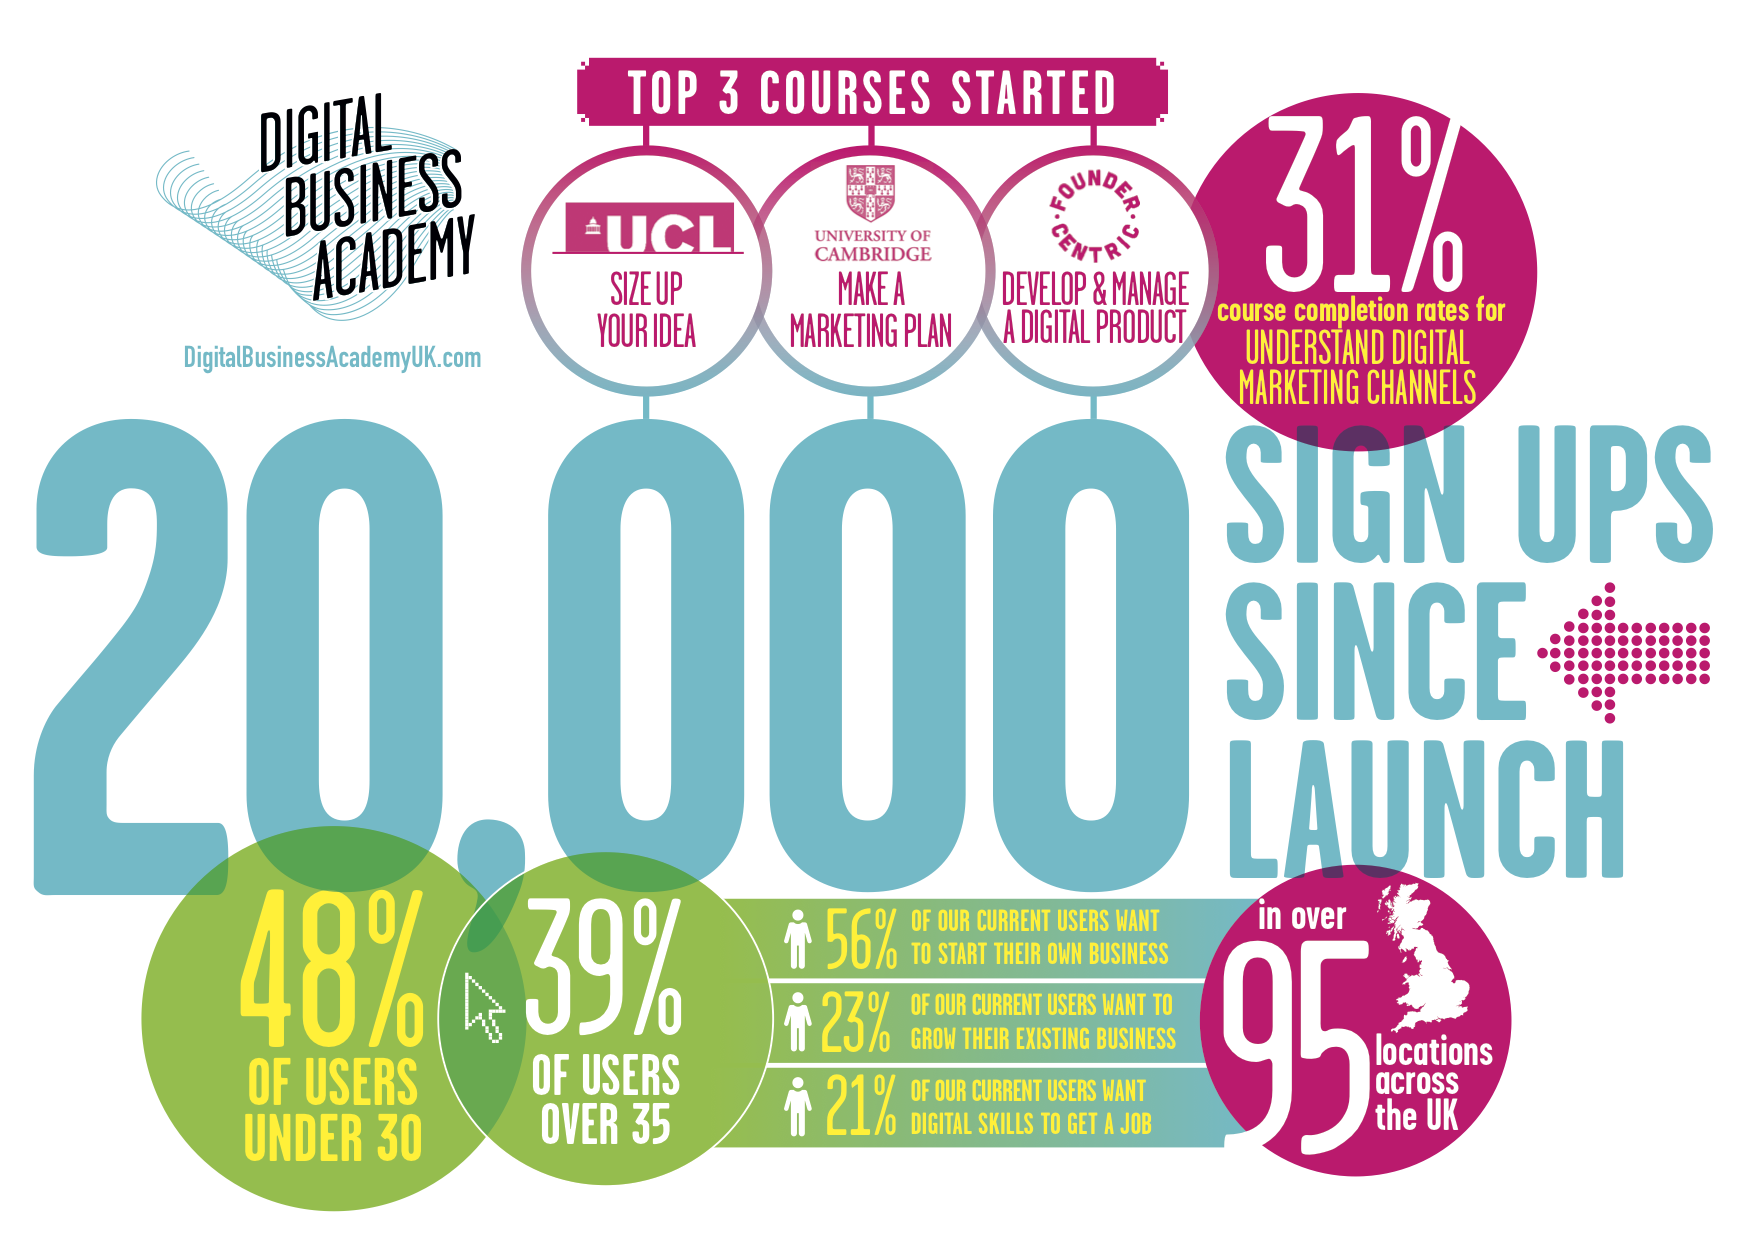 We're now at 20,000 signups :-) We promise our very best to help you all achieve your Digital Dreams #DigitalSkills https://t.co/OfreBL6kqD